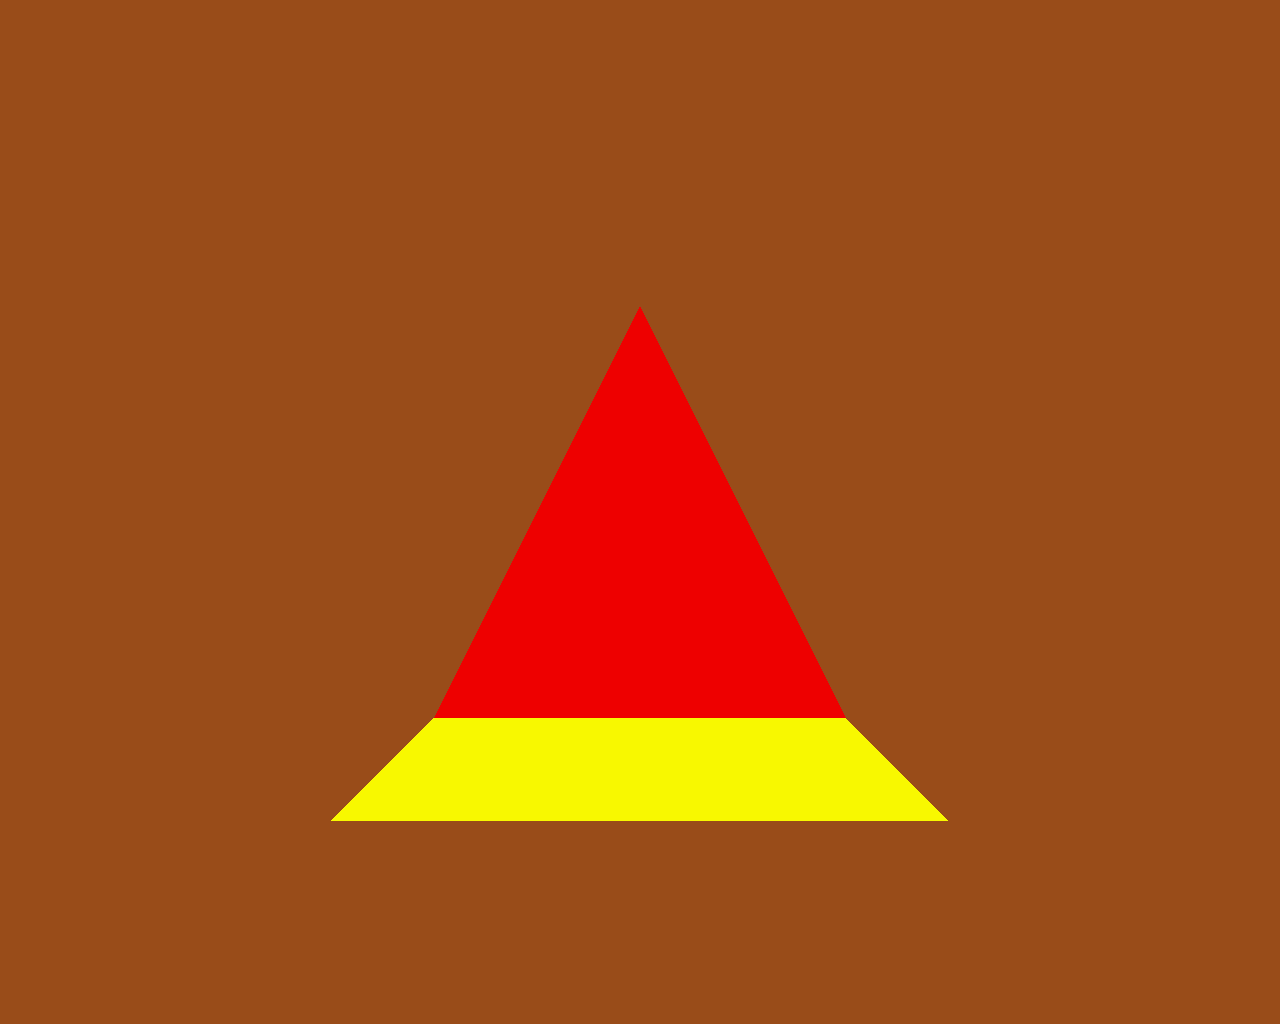 Red triangle, yellow square